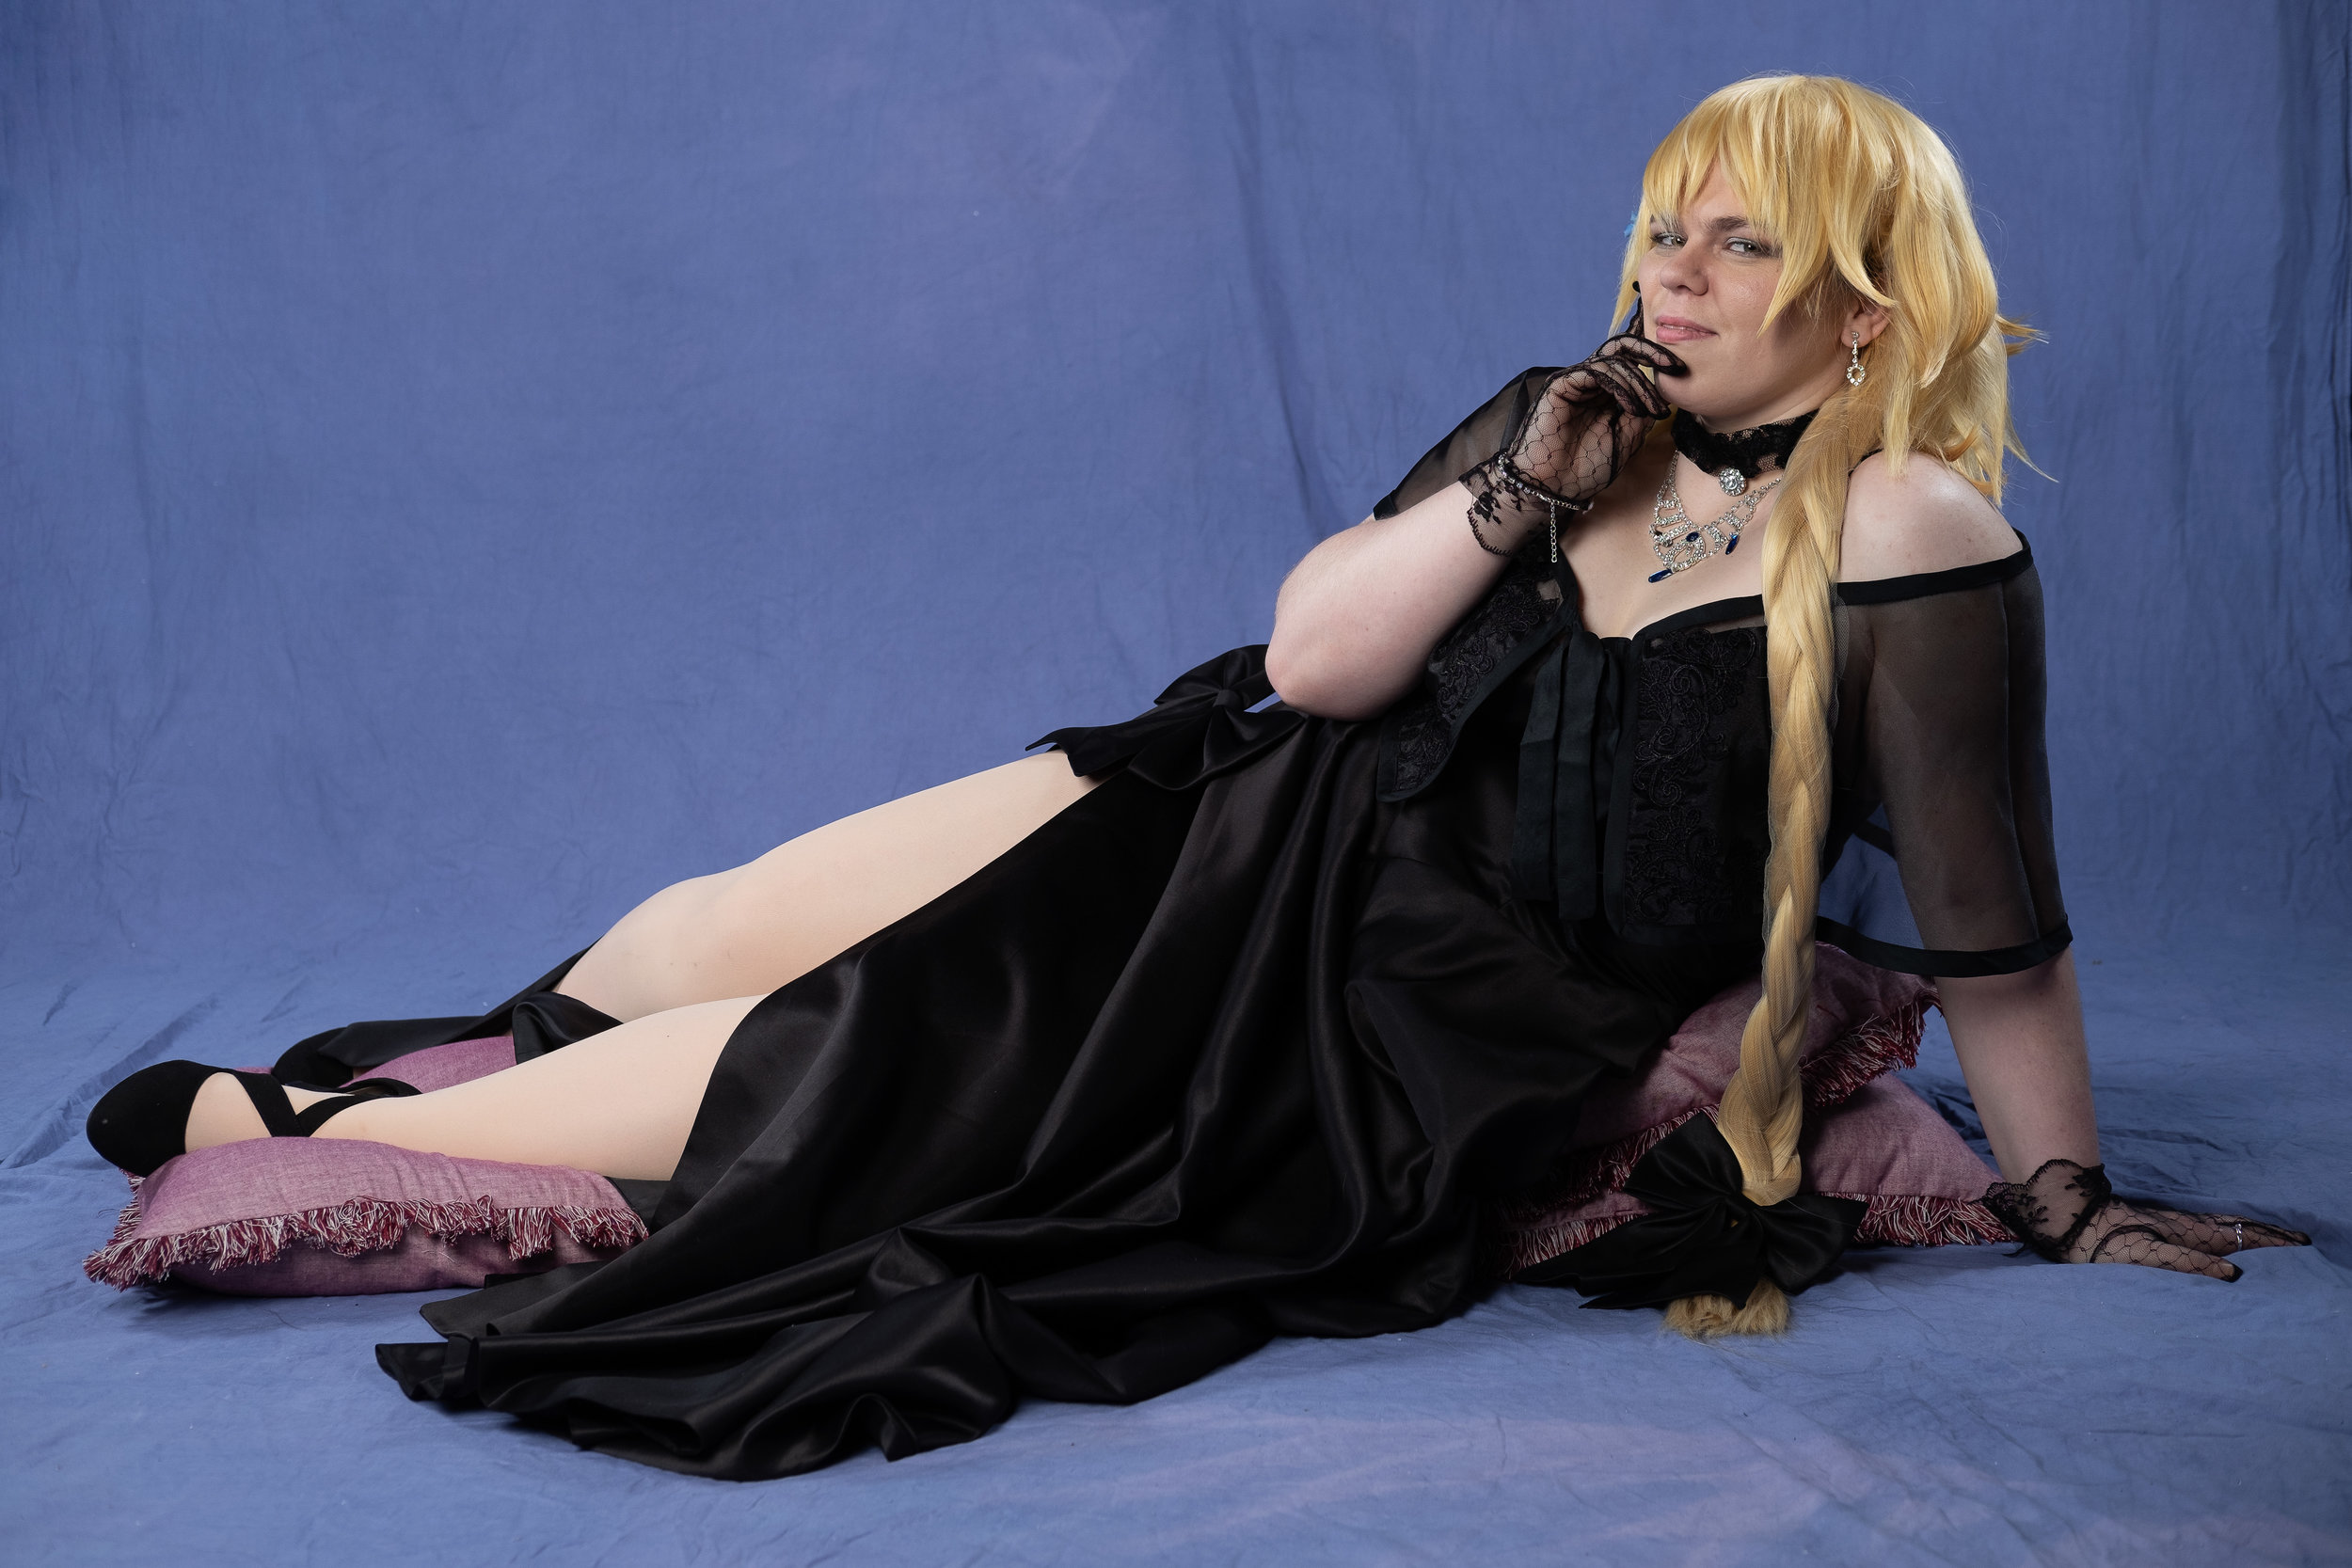 Tacocat Cosplay cosplaying as Jeanne d'Arc from Fate/Grand Order